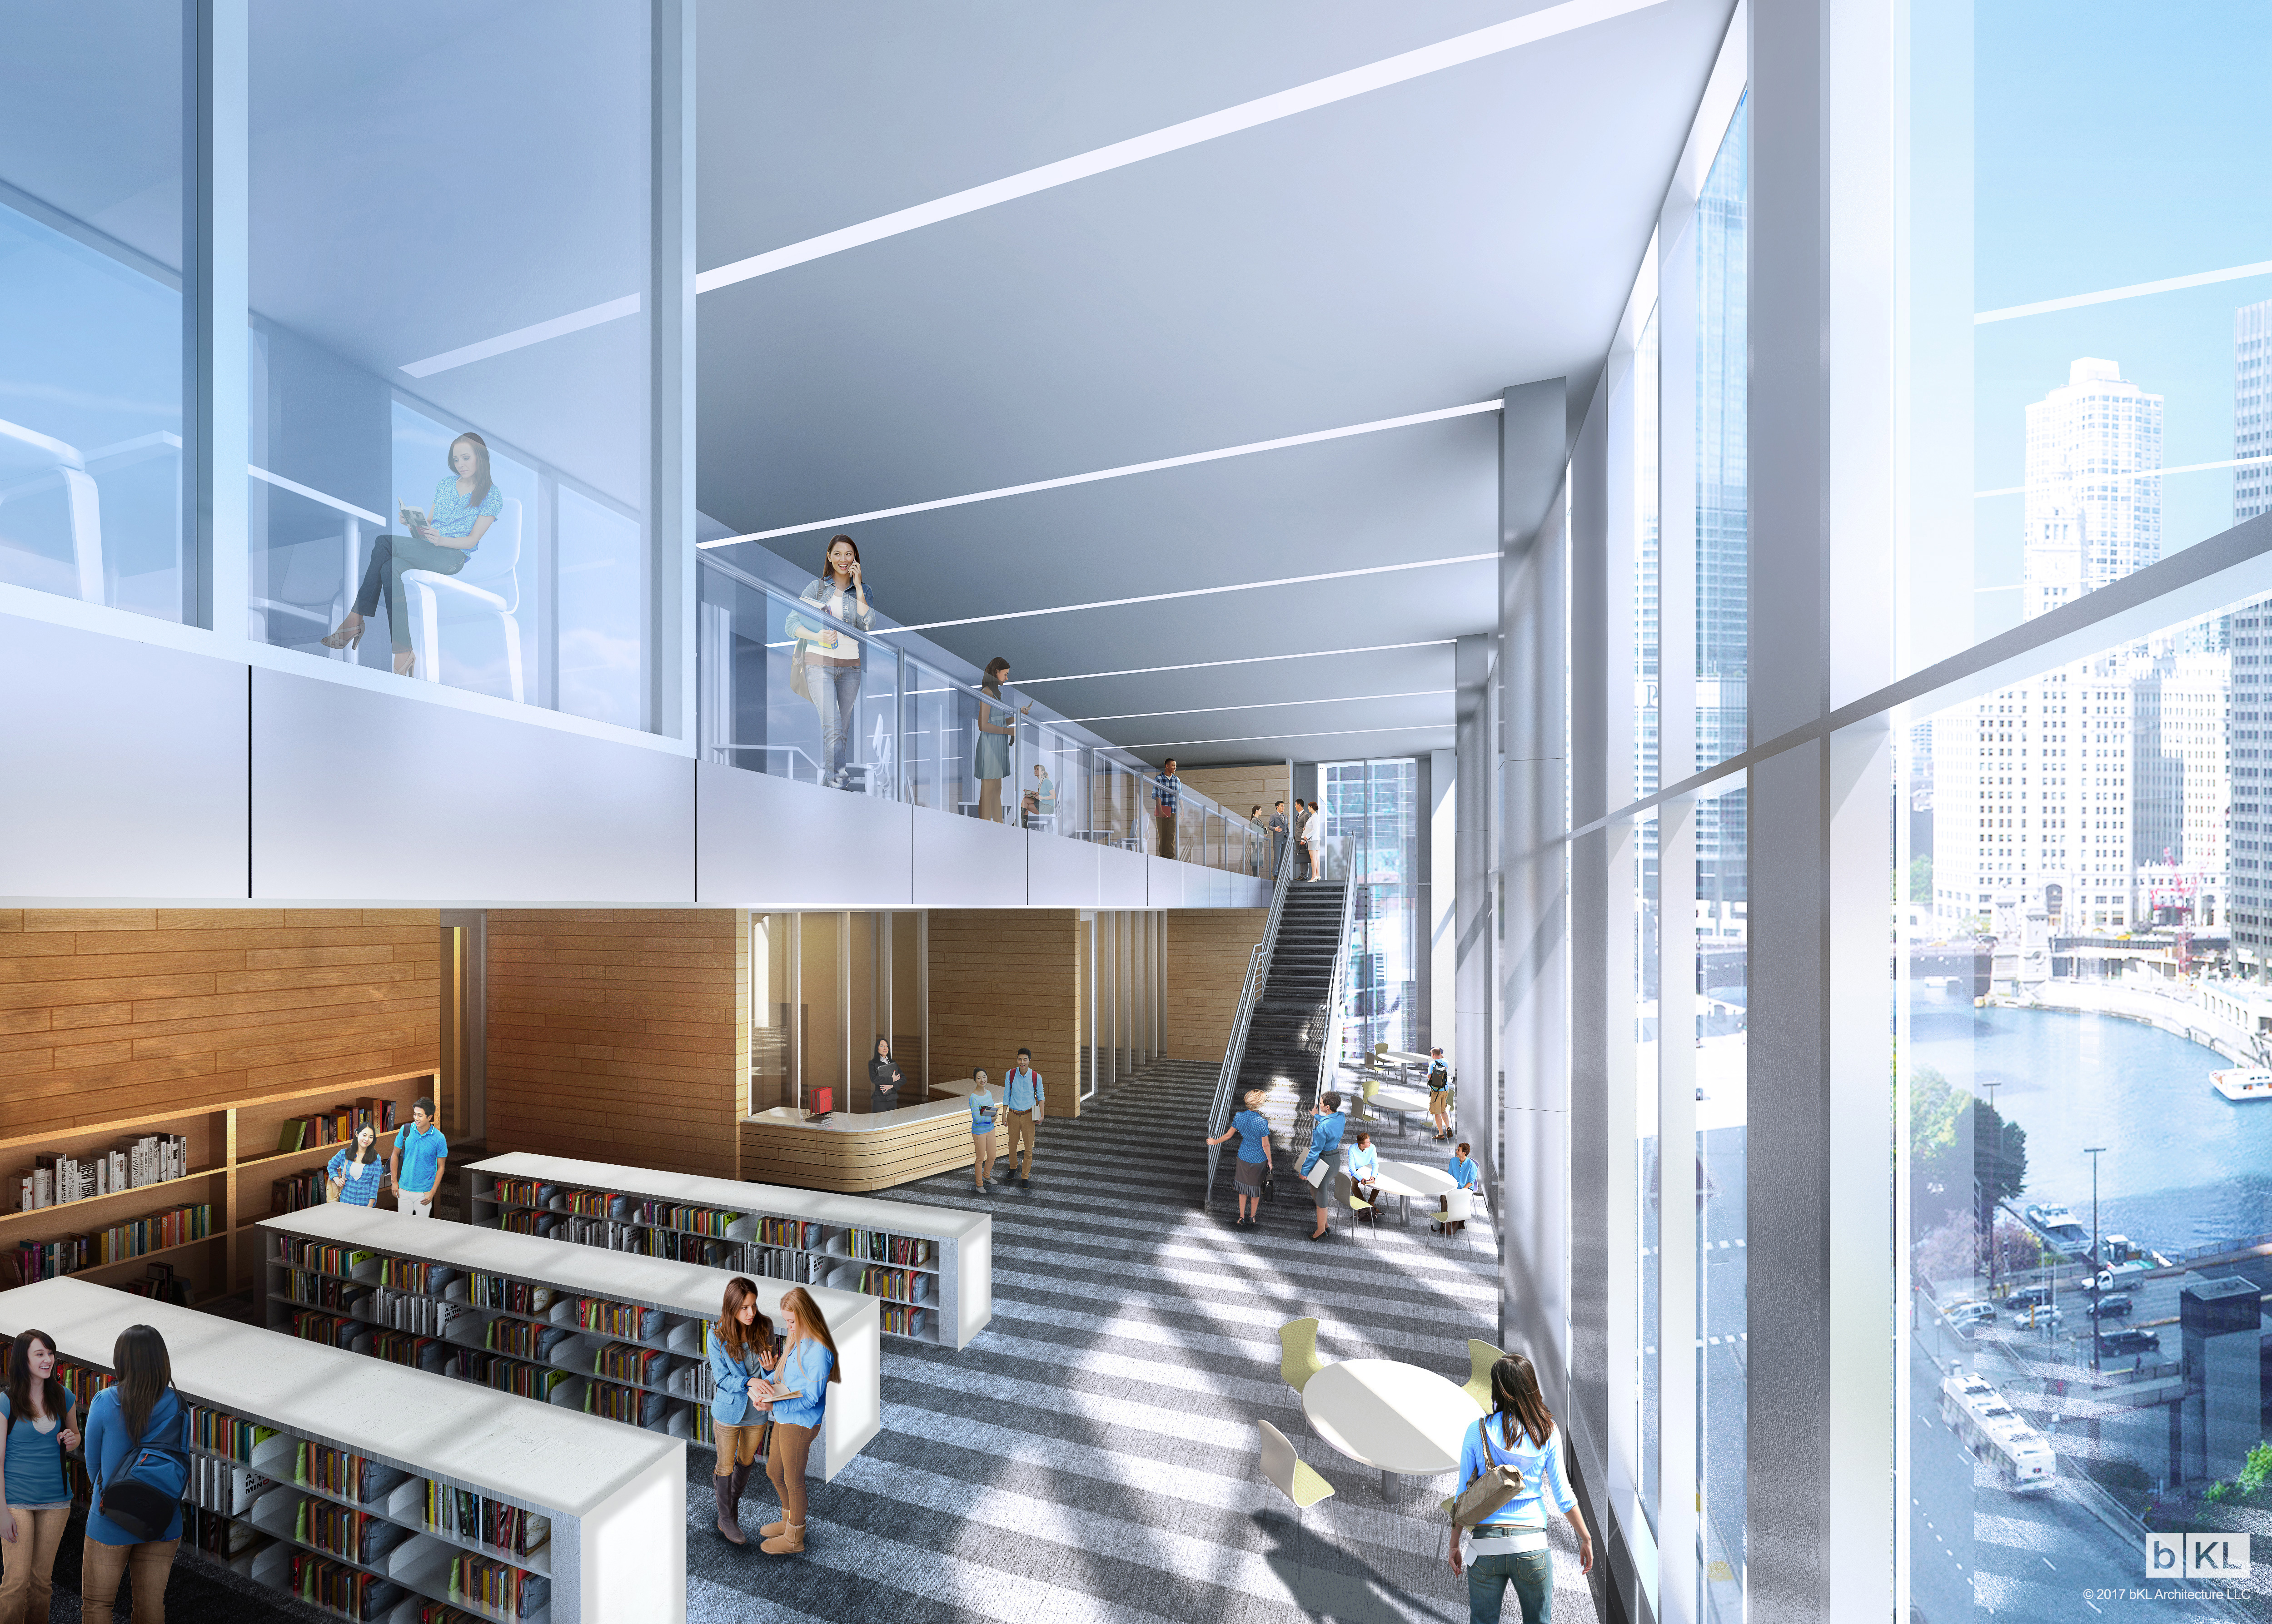 open scholarship foundation design community applications announcement interior of scholarships